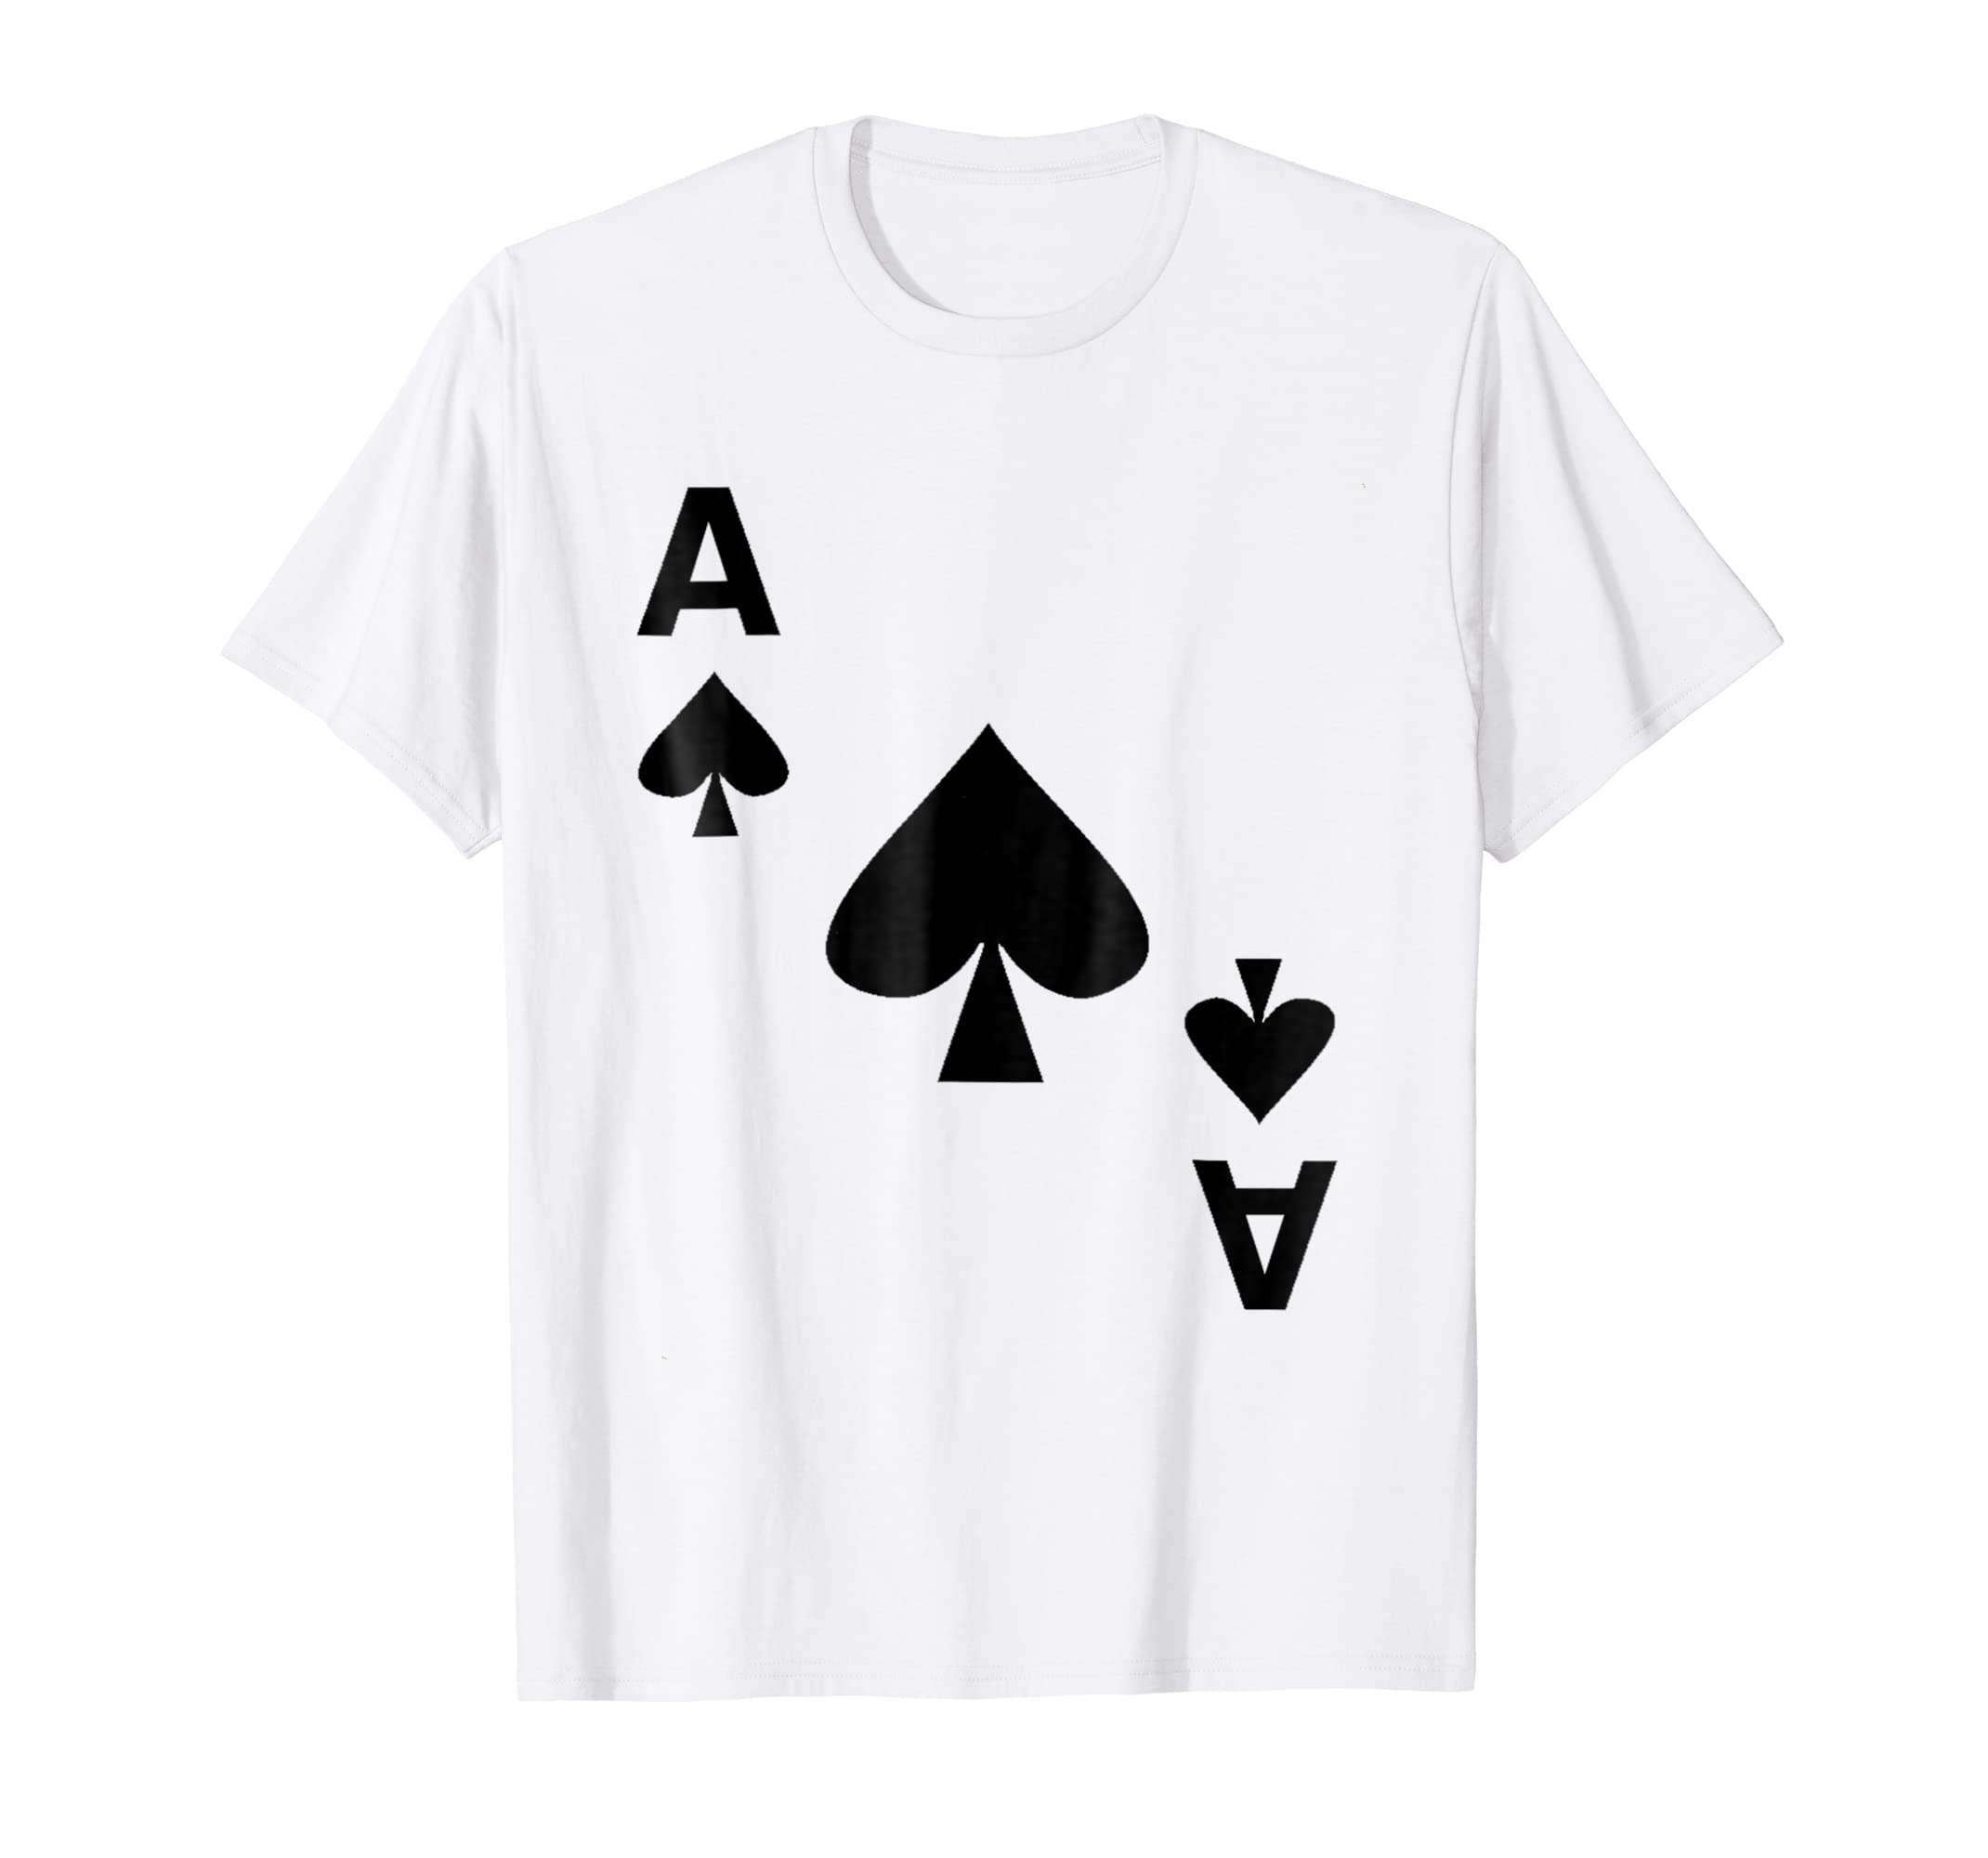 Ace of Spades T Shirt Halloween Deck Card Costume Matching-Teechatpro 27d4e5314